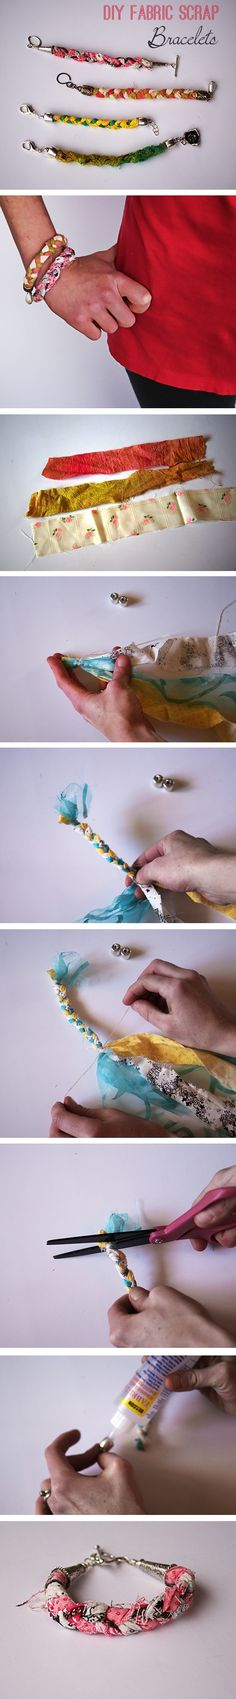 Easy Scrap Fabric Bracelet DIY. Great For Teens/Tweens.